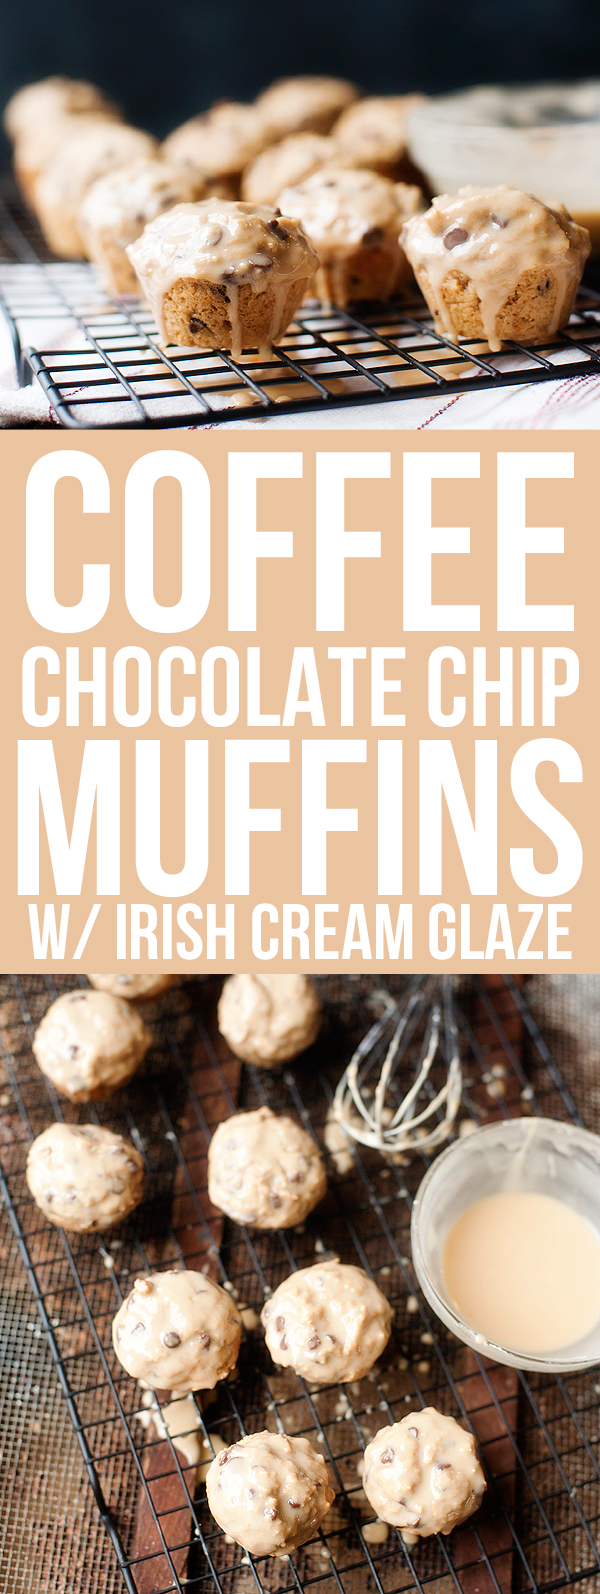 Coffee Chocolate Chip Muffins with Irish Cream Glaze